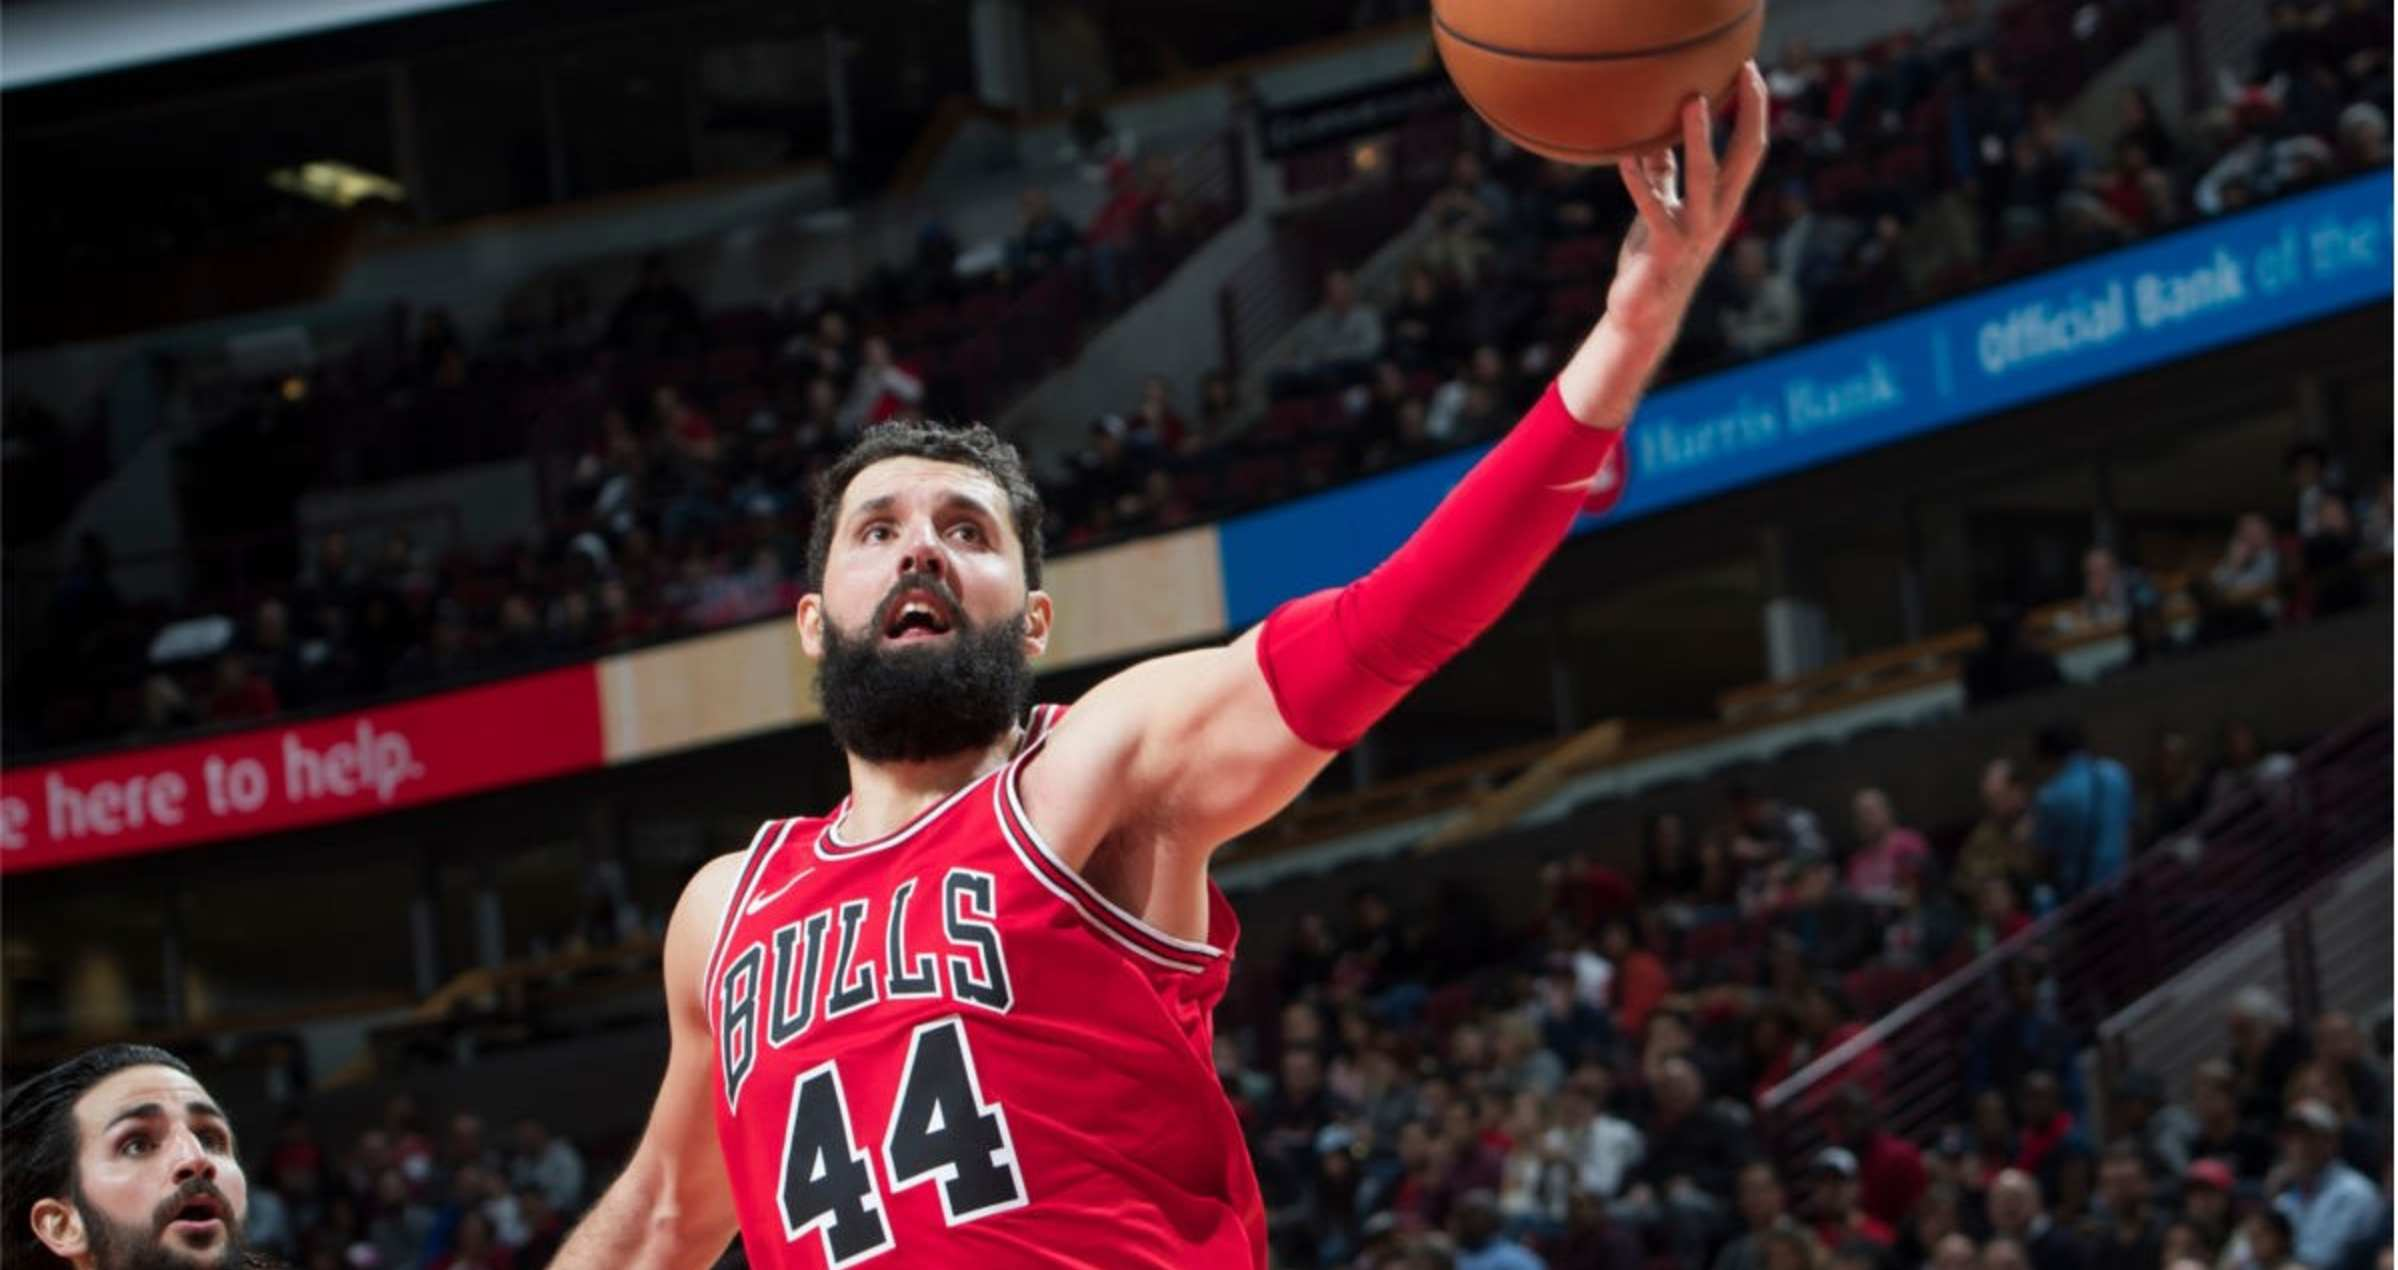 Nikola Mirotic #44 of the Chicago Bulls goes in for a layup